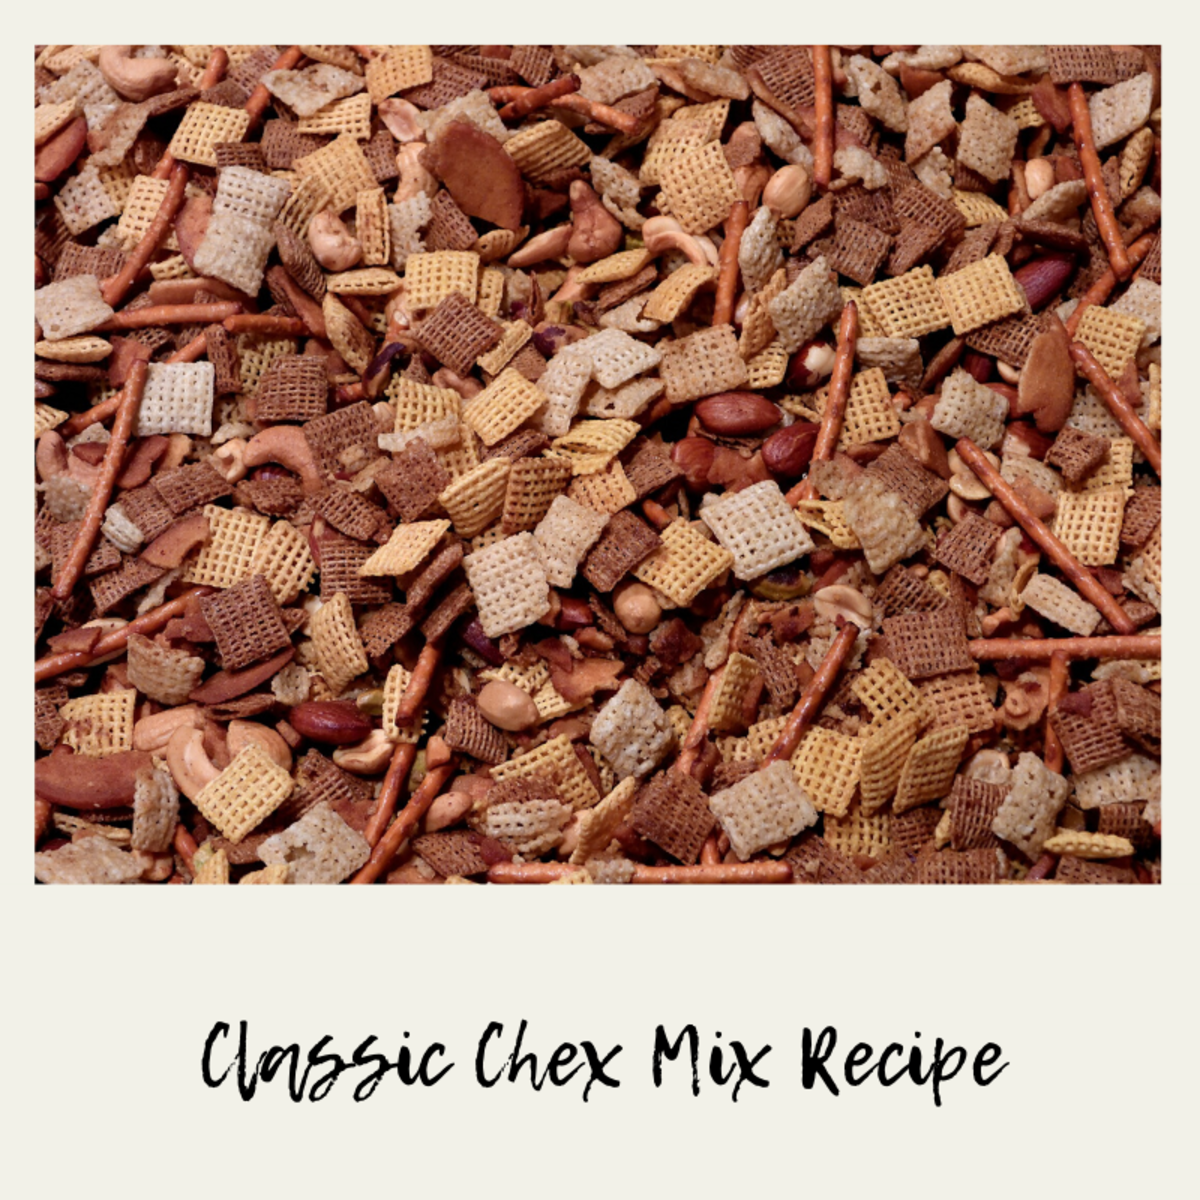 Classic Chex Mix Recipe